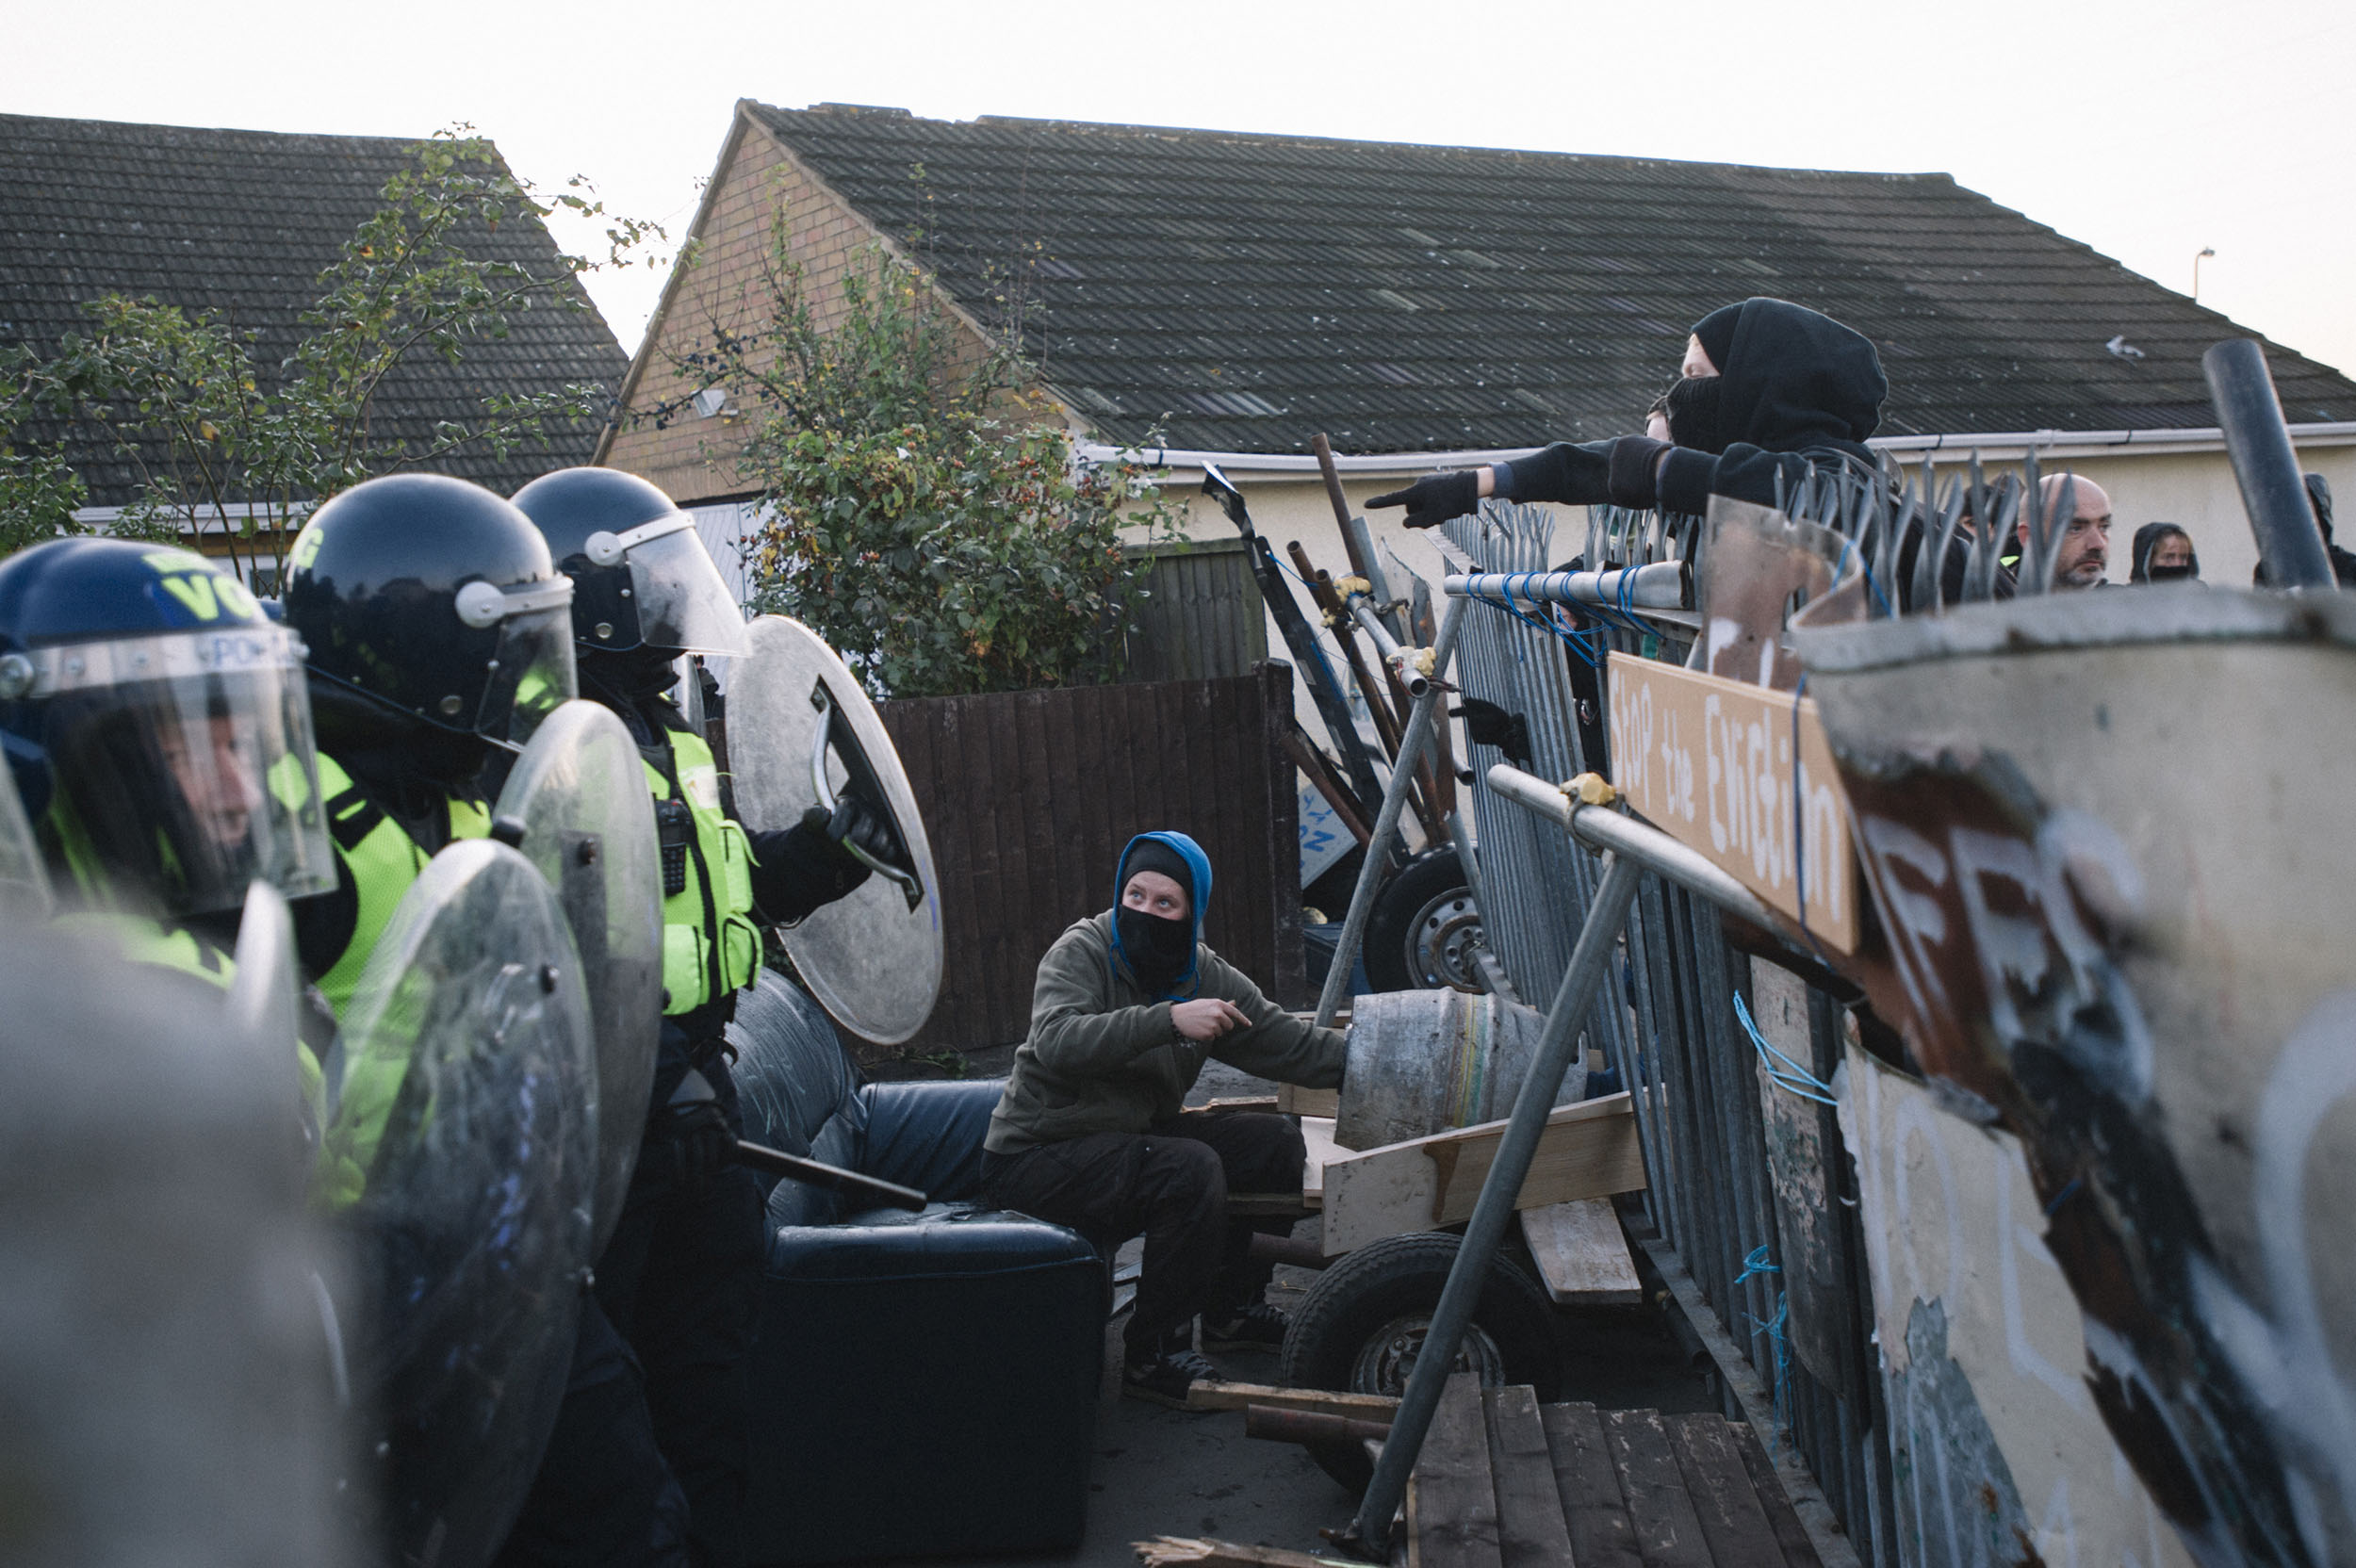 An activist locks her arm inside a concrete filled barrel, as a barrier against police.